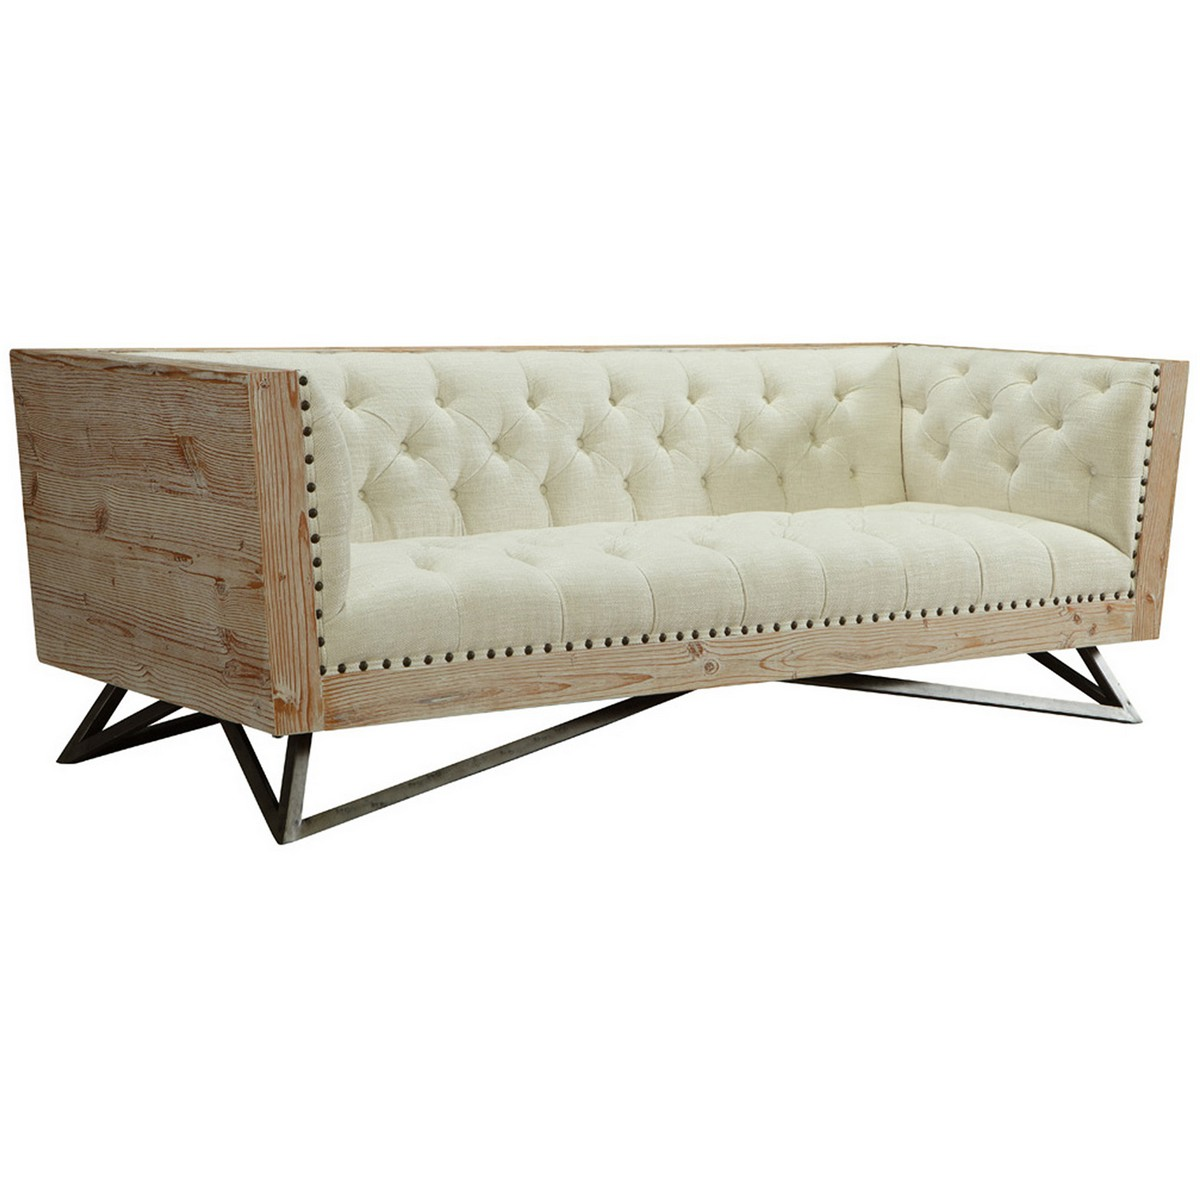 Armen Living Regis Cream Sofa With Pine Frame And Gunmetal Legs